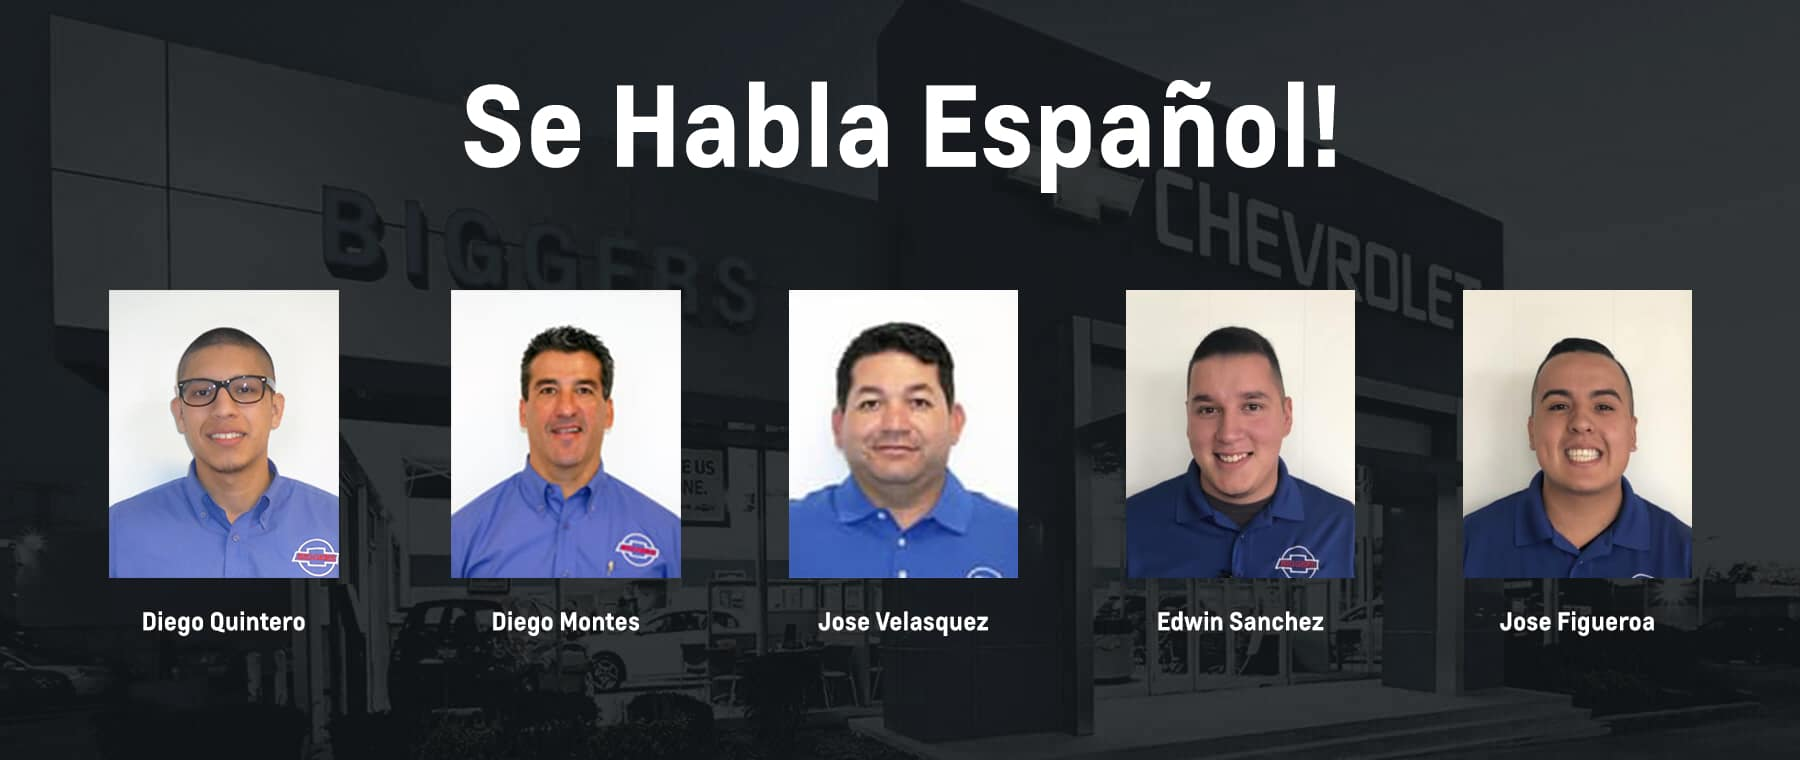 Spanish Speaking Staff at Biggers Chevrolet in Elgin, IL